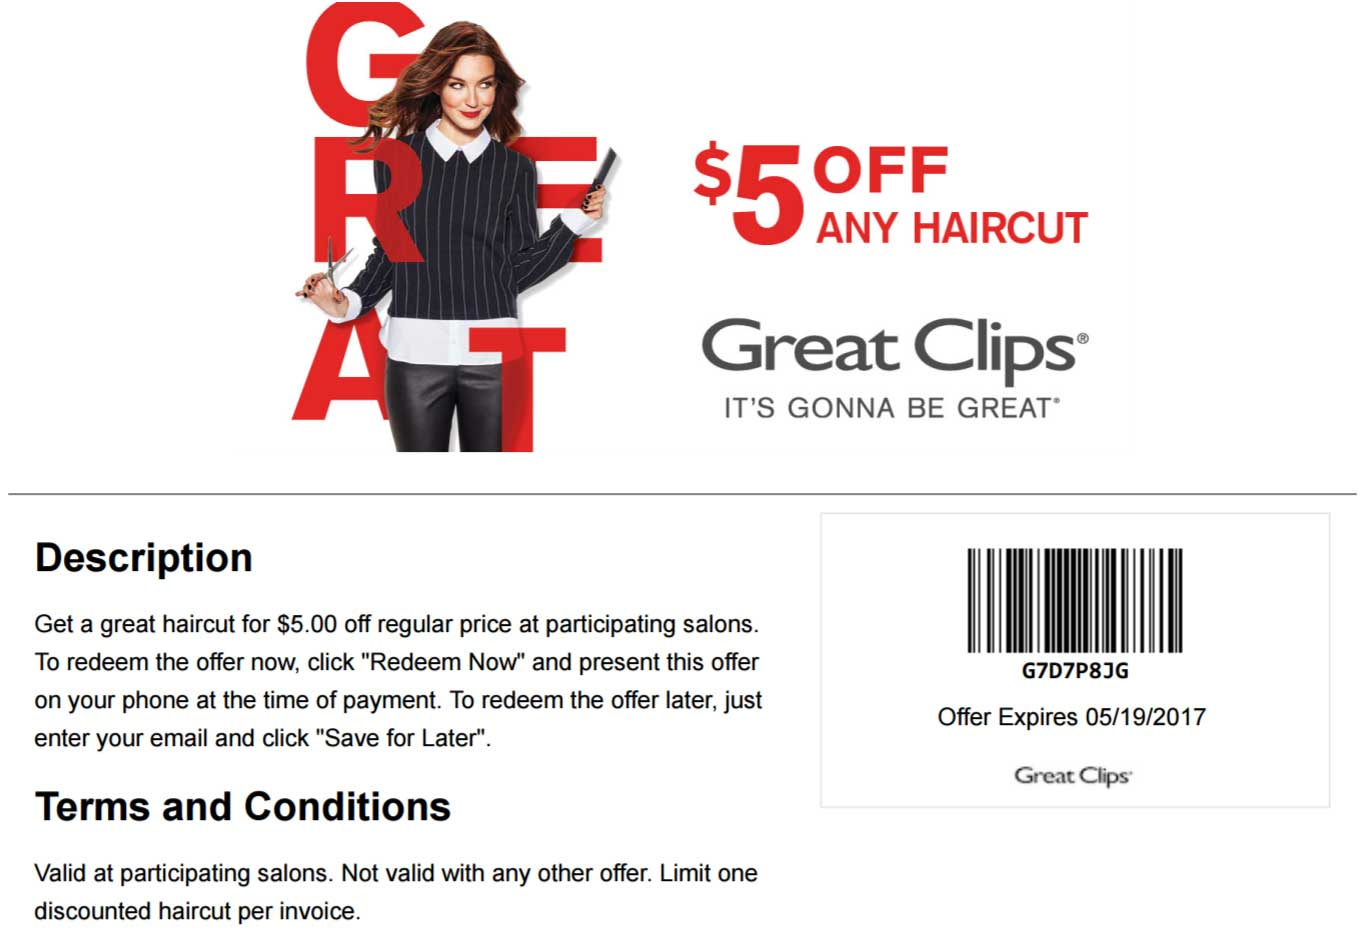 haircut coupons near me great 2018 april ebay deals ph 1723 | April 2017 108 Greatclips coupon 7692